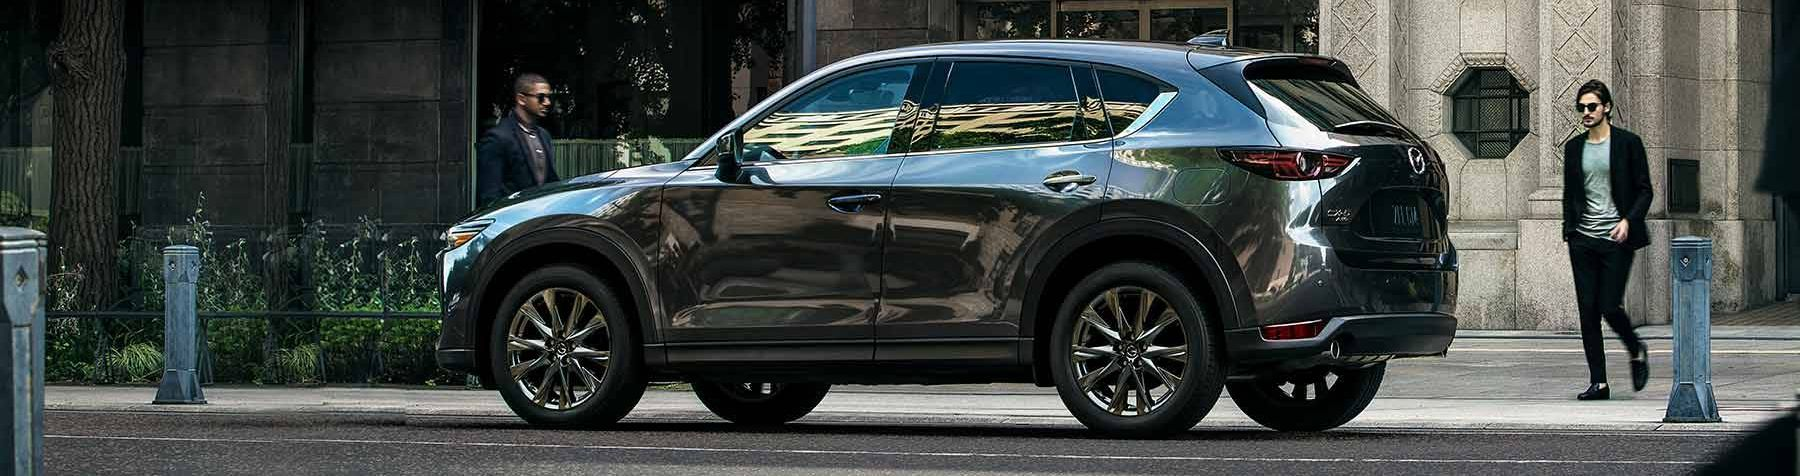 2019 Mazda CX-5 Leasing near New Braunfels, TX